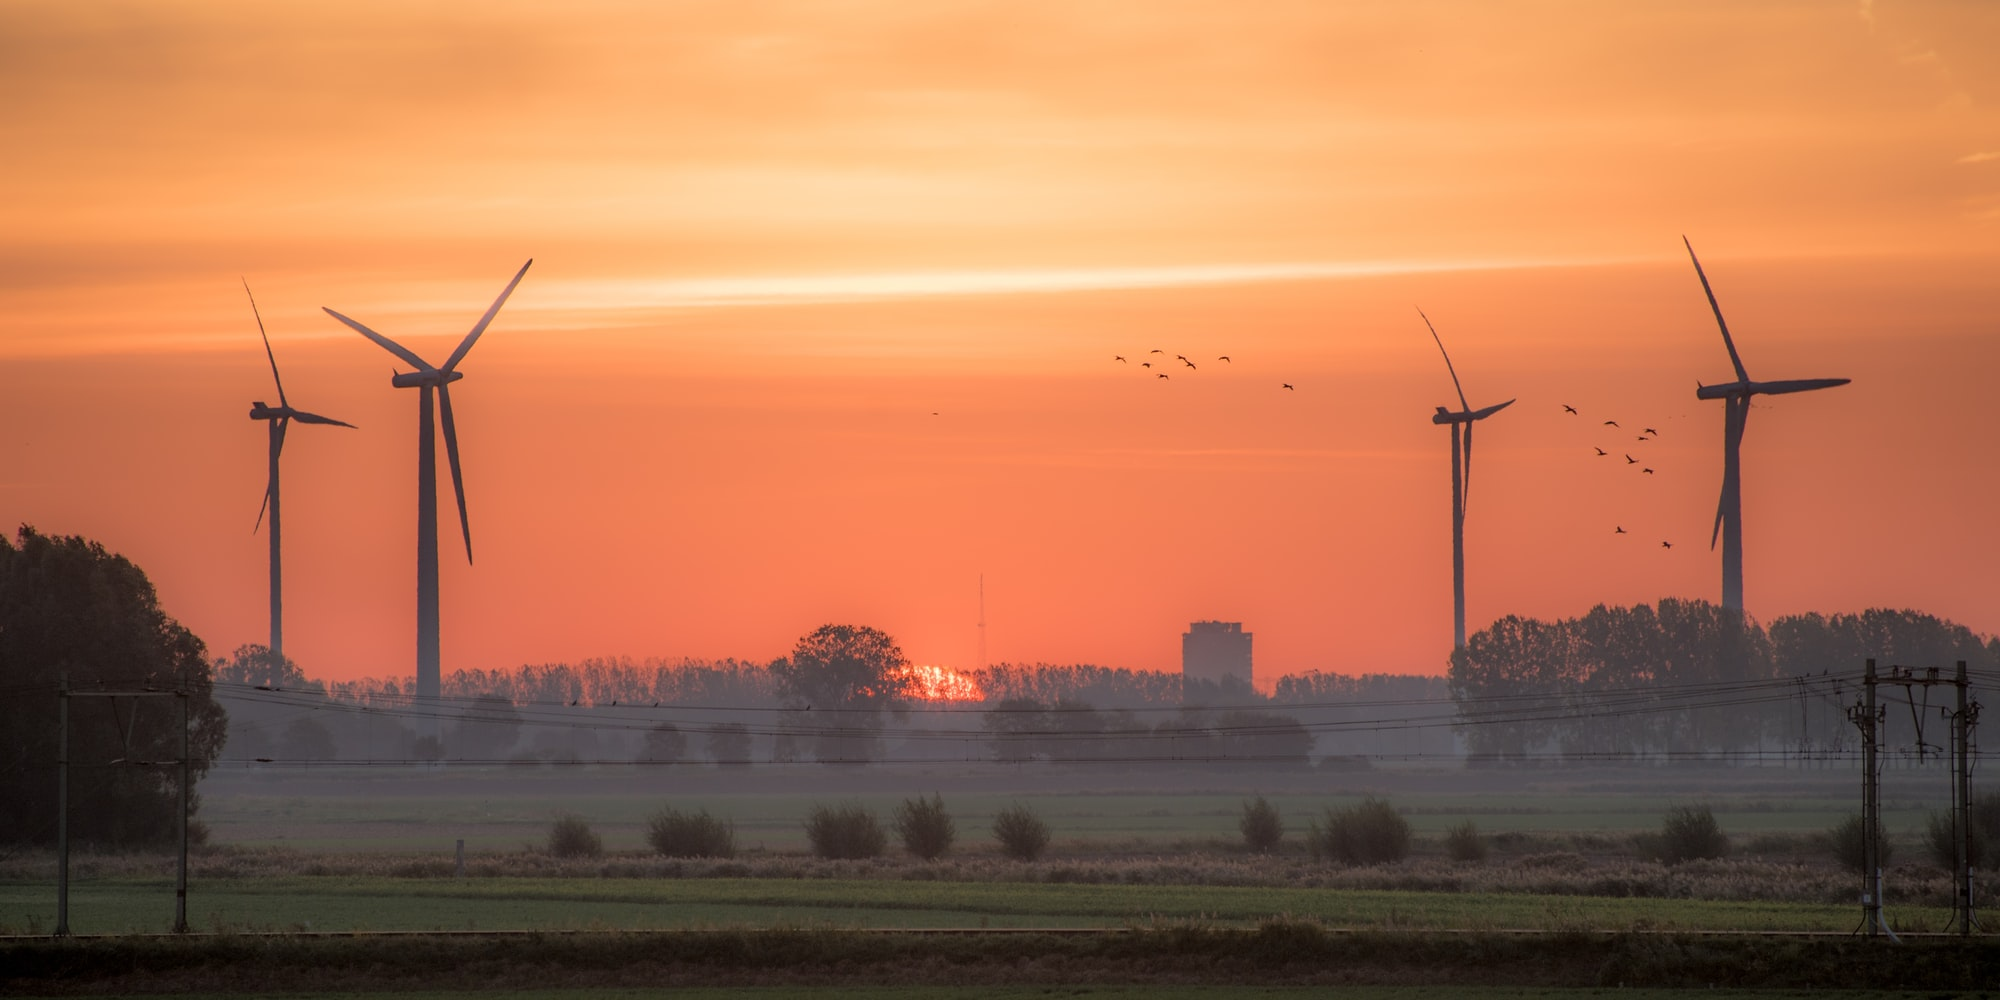 🦅 A simple improvement to wind turbines can greatly reduce bird deaths